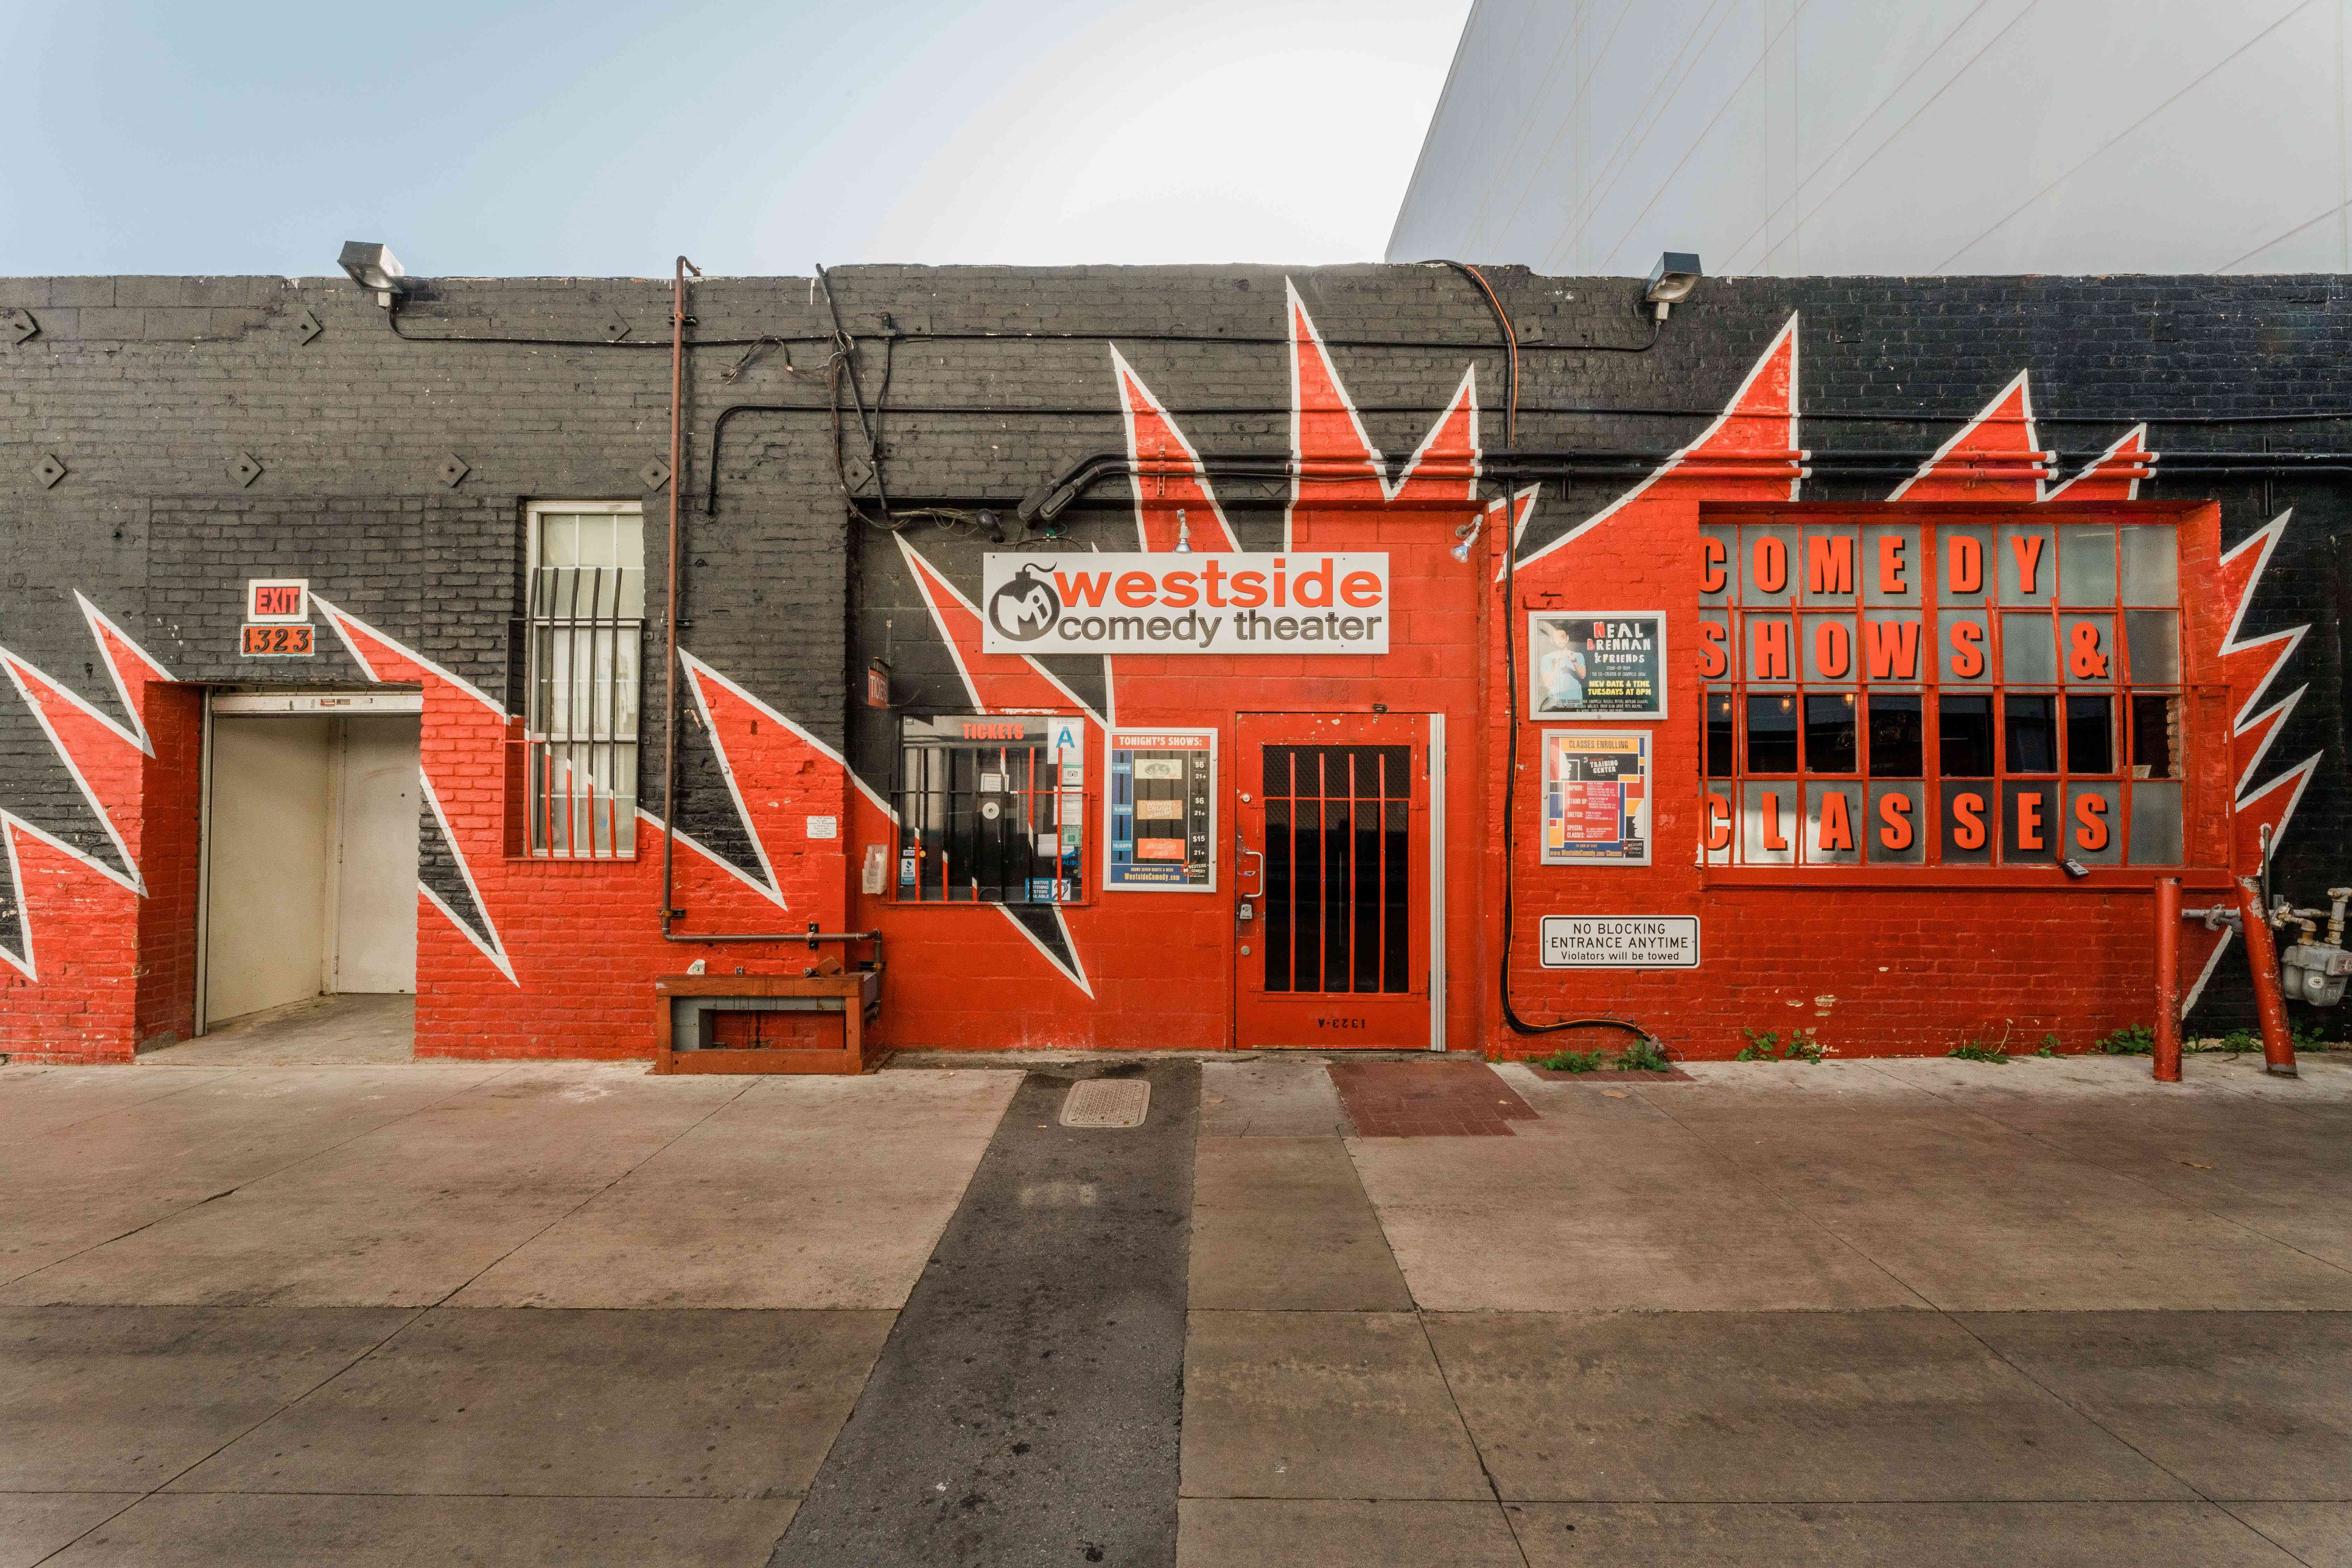 Westside Comedy Theater, Los Angeles, CA